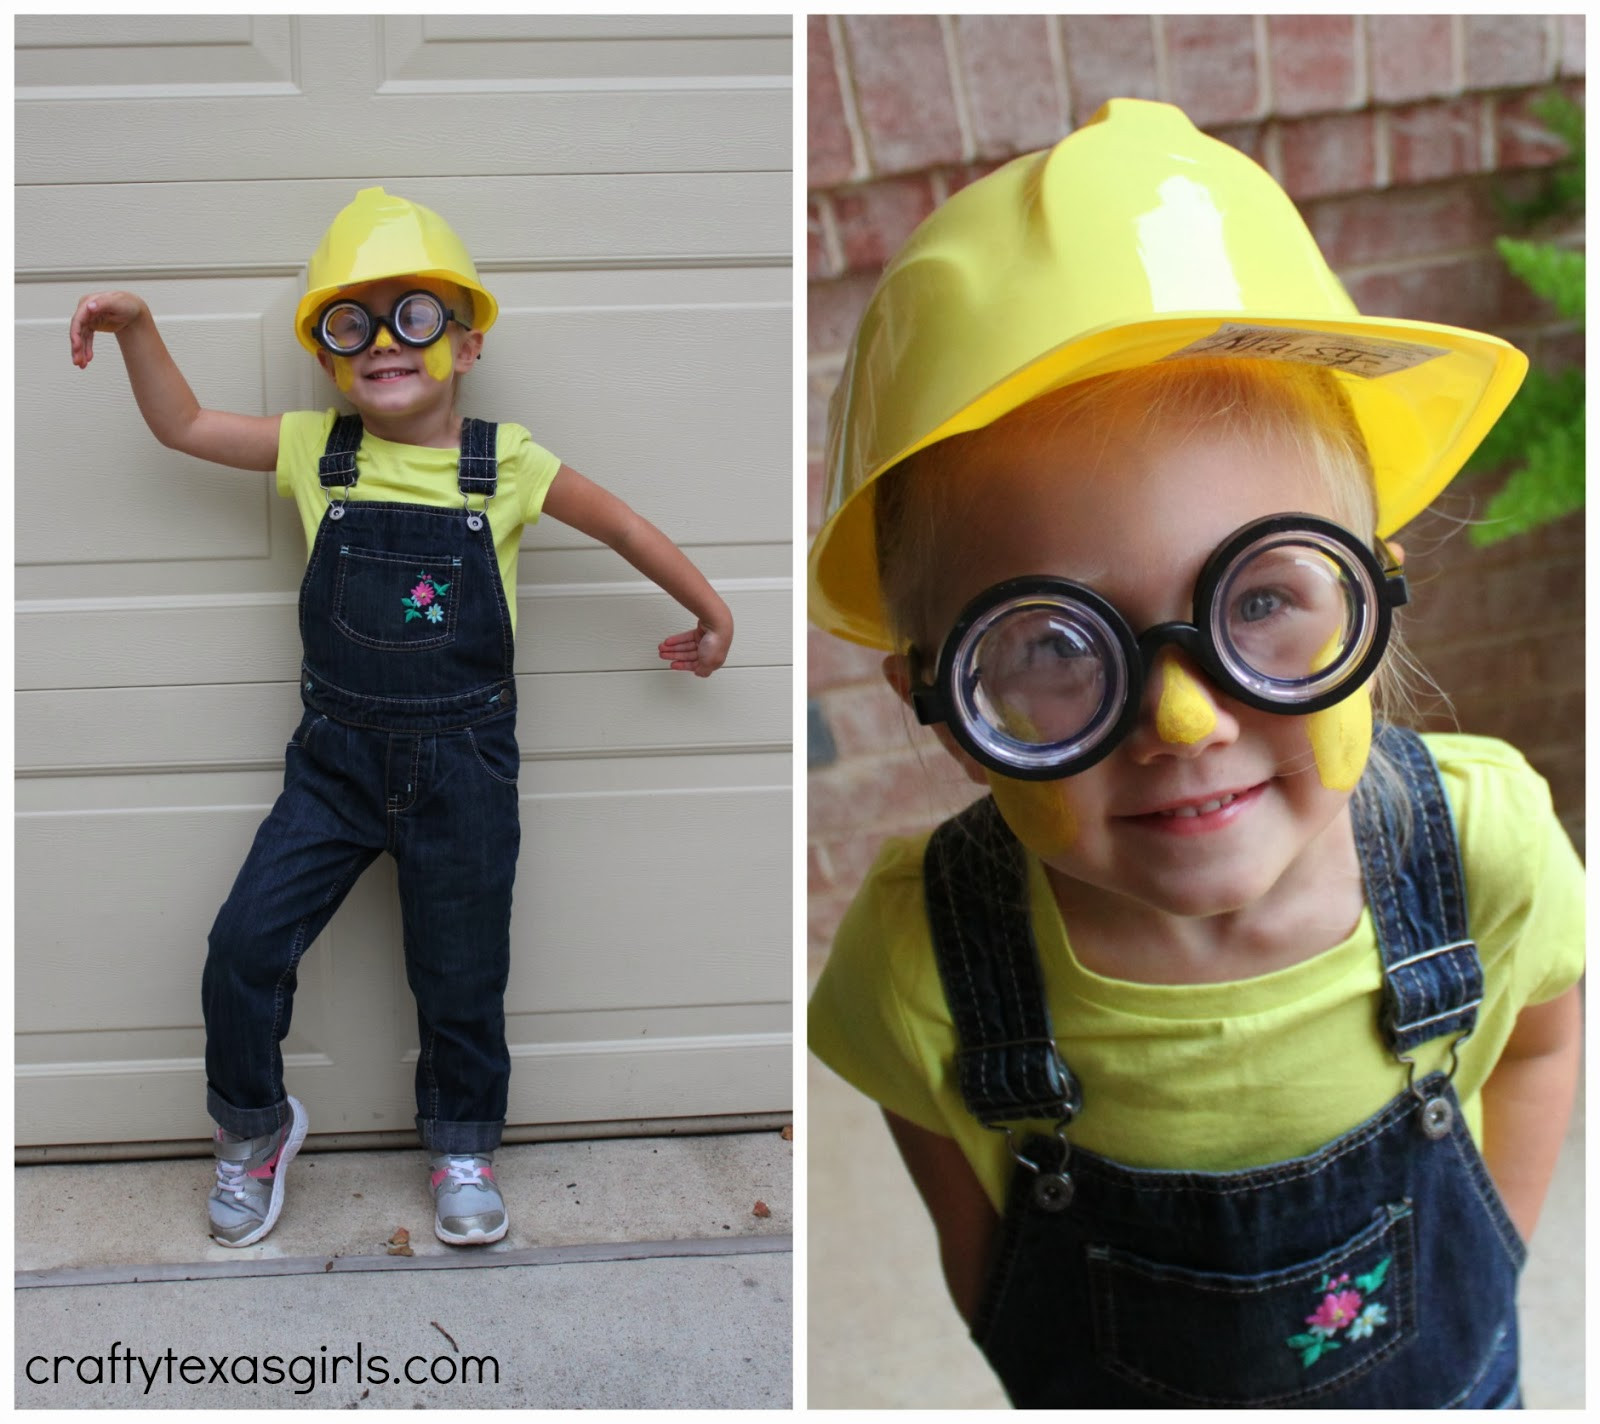 DIY Toddler Minion Costume  Crafty Texas Girls DIY Minion Costume